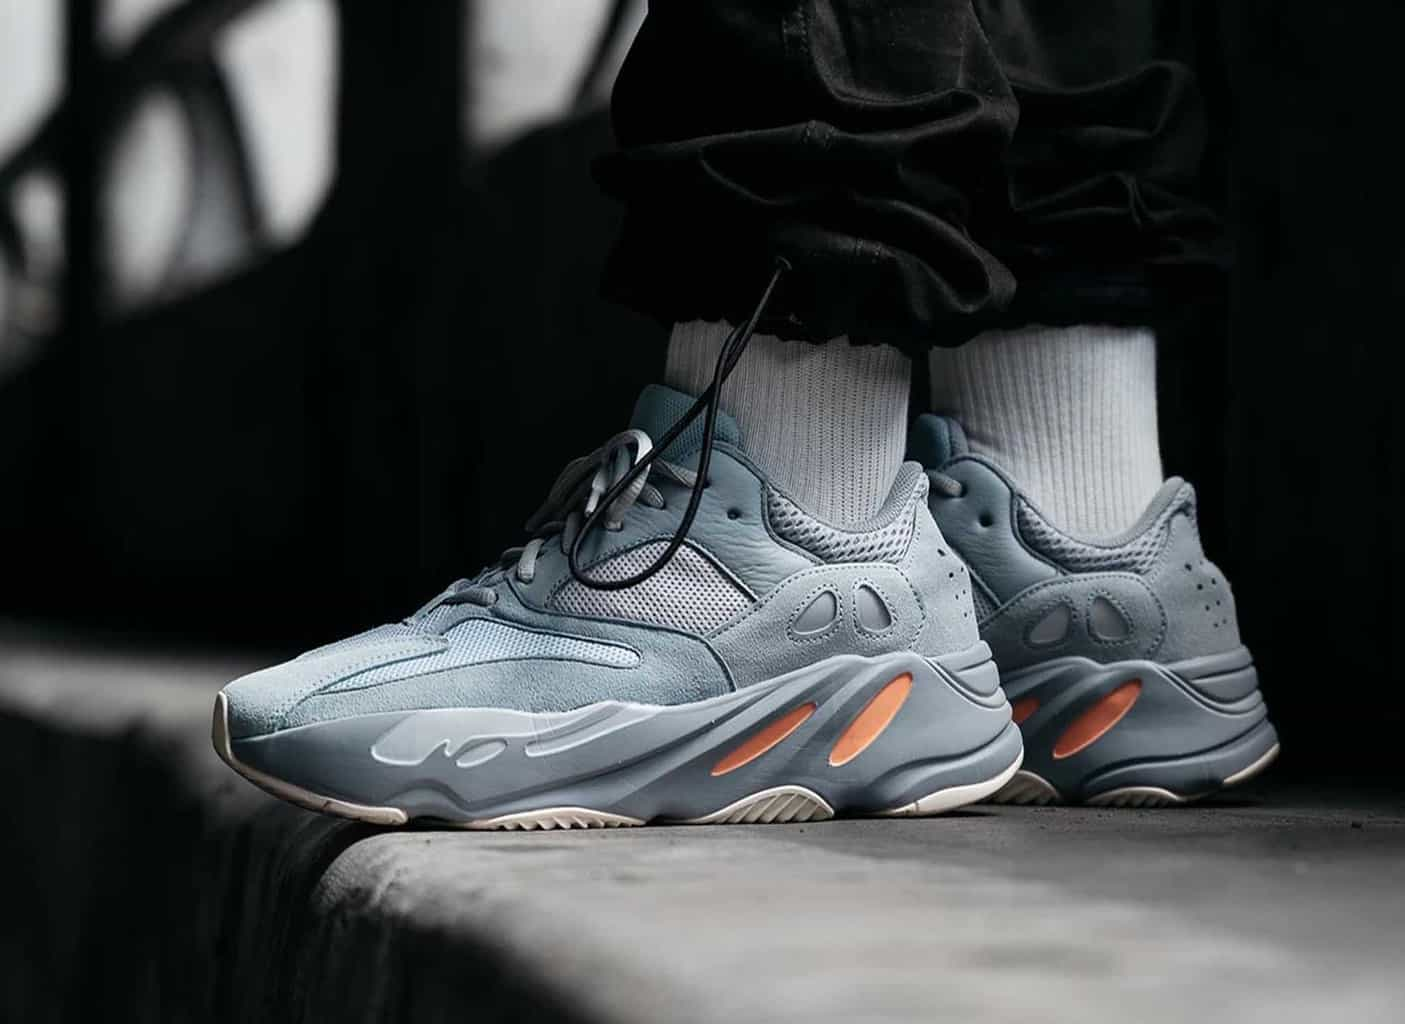 Adidas YEEZY Boost 700 to Release New